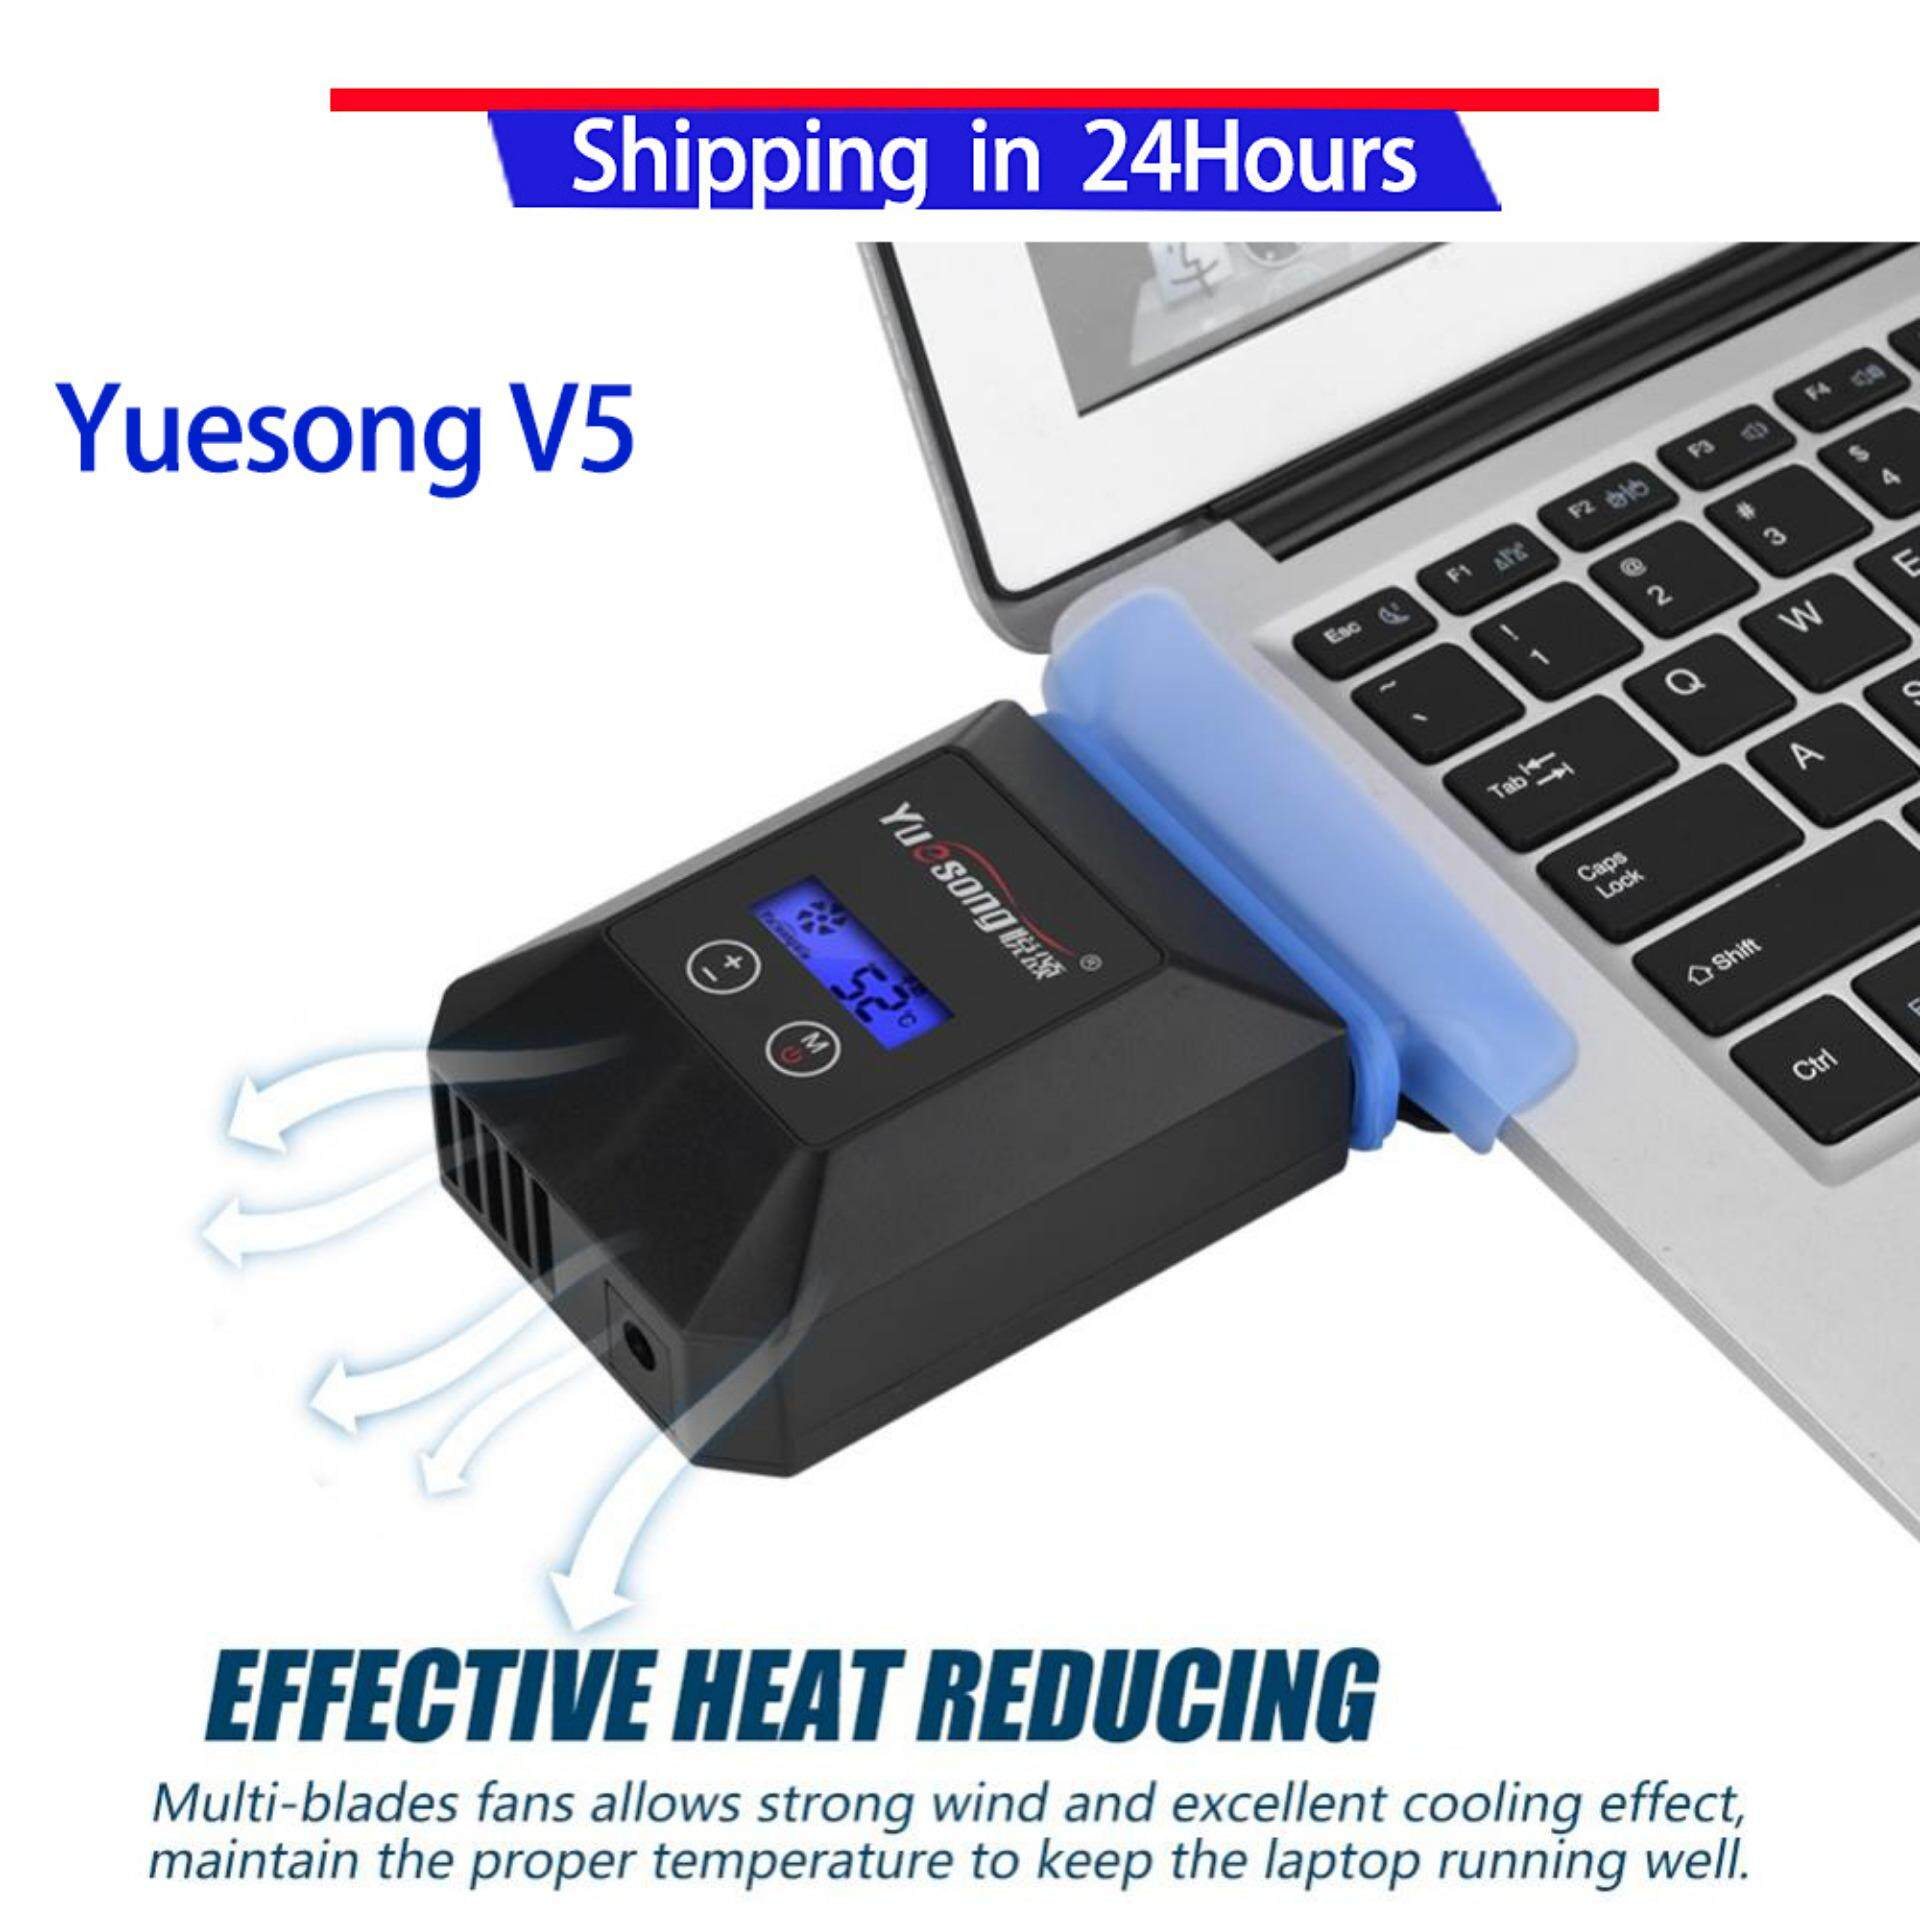 Yuesong V5 USB Portable Laptop Cooler Portable Laptop USB Suction Type Cooling Fan Notebook Cooler Laptop Cooling Pads Malaysia